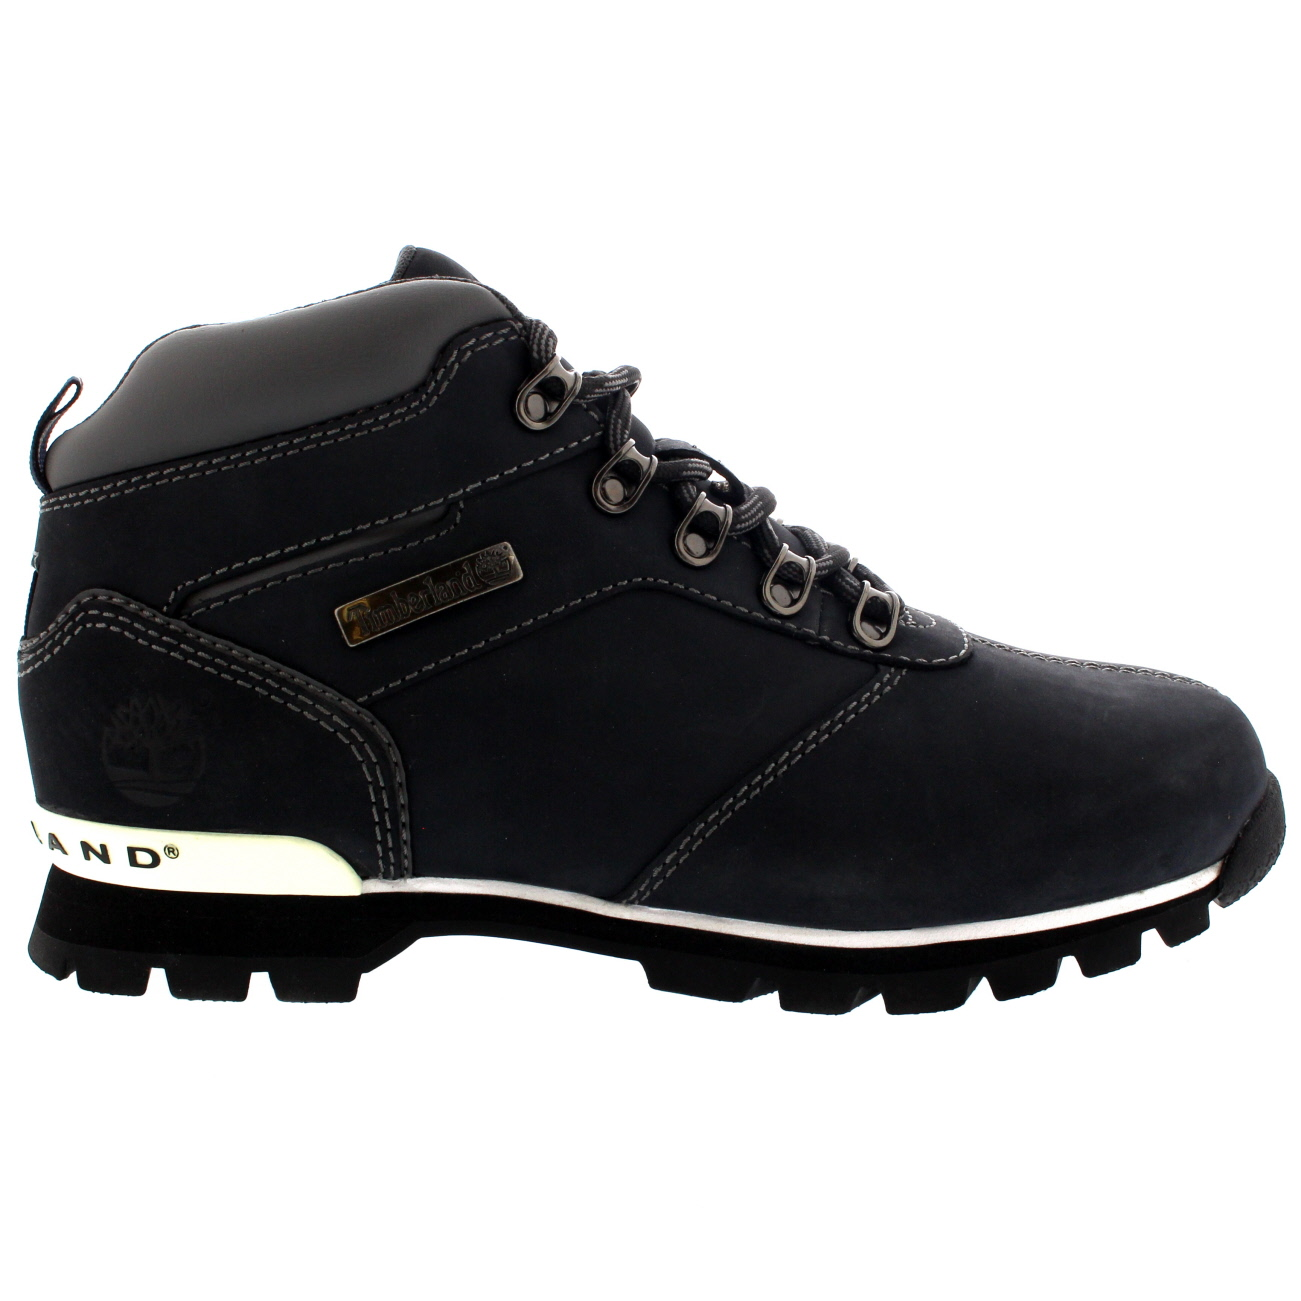 Mens-Timberland-Splitrock-2-Hiker-Winter-Hiking-Walking-